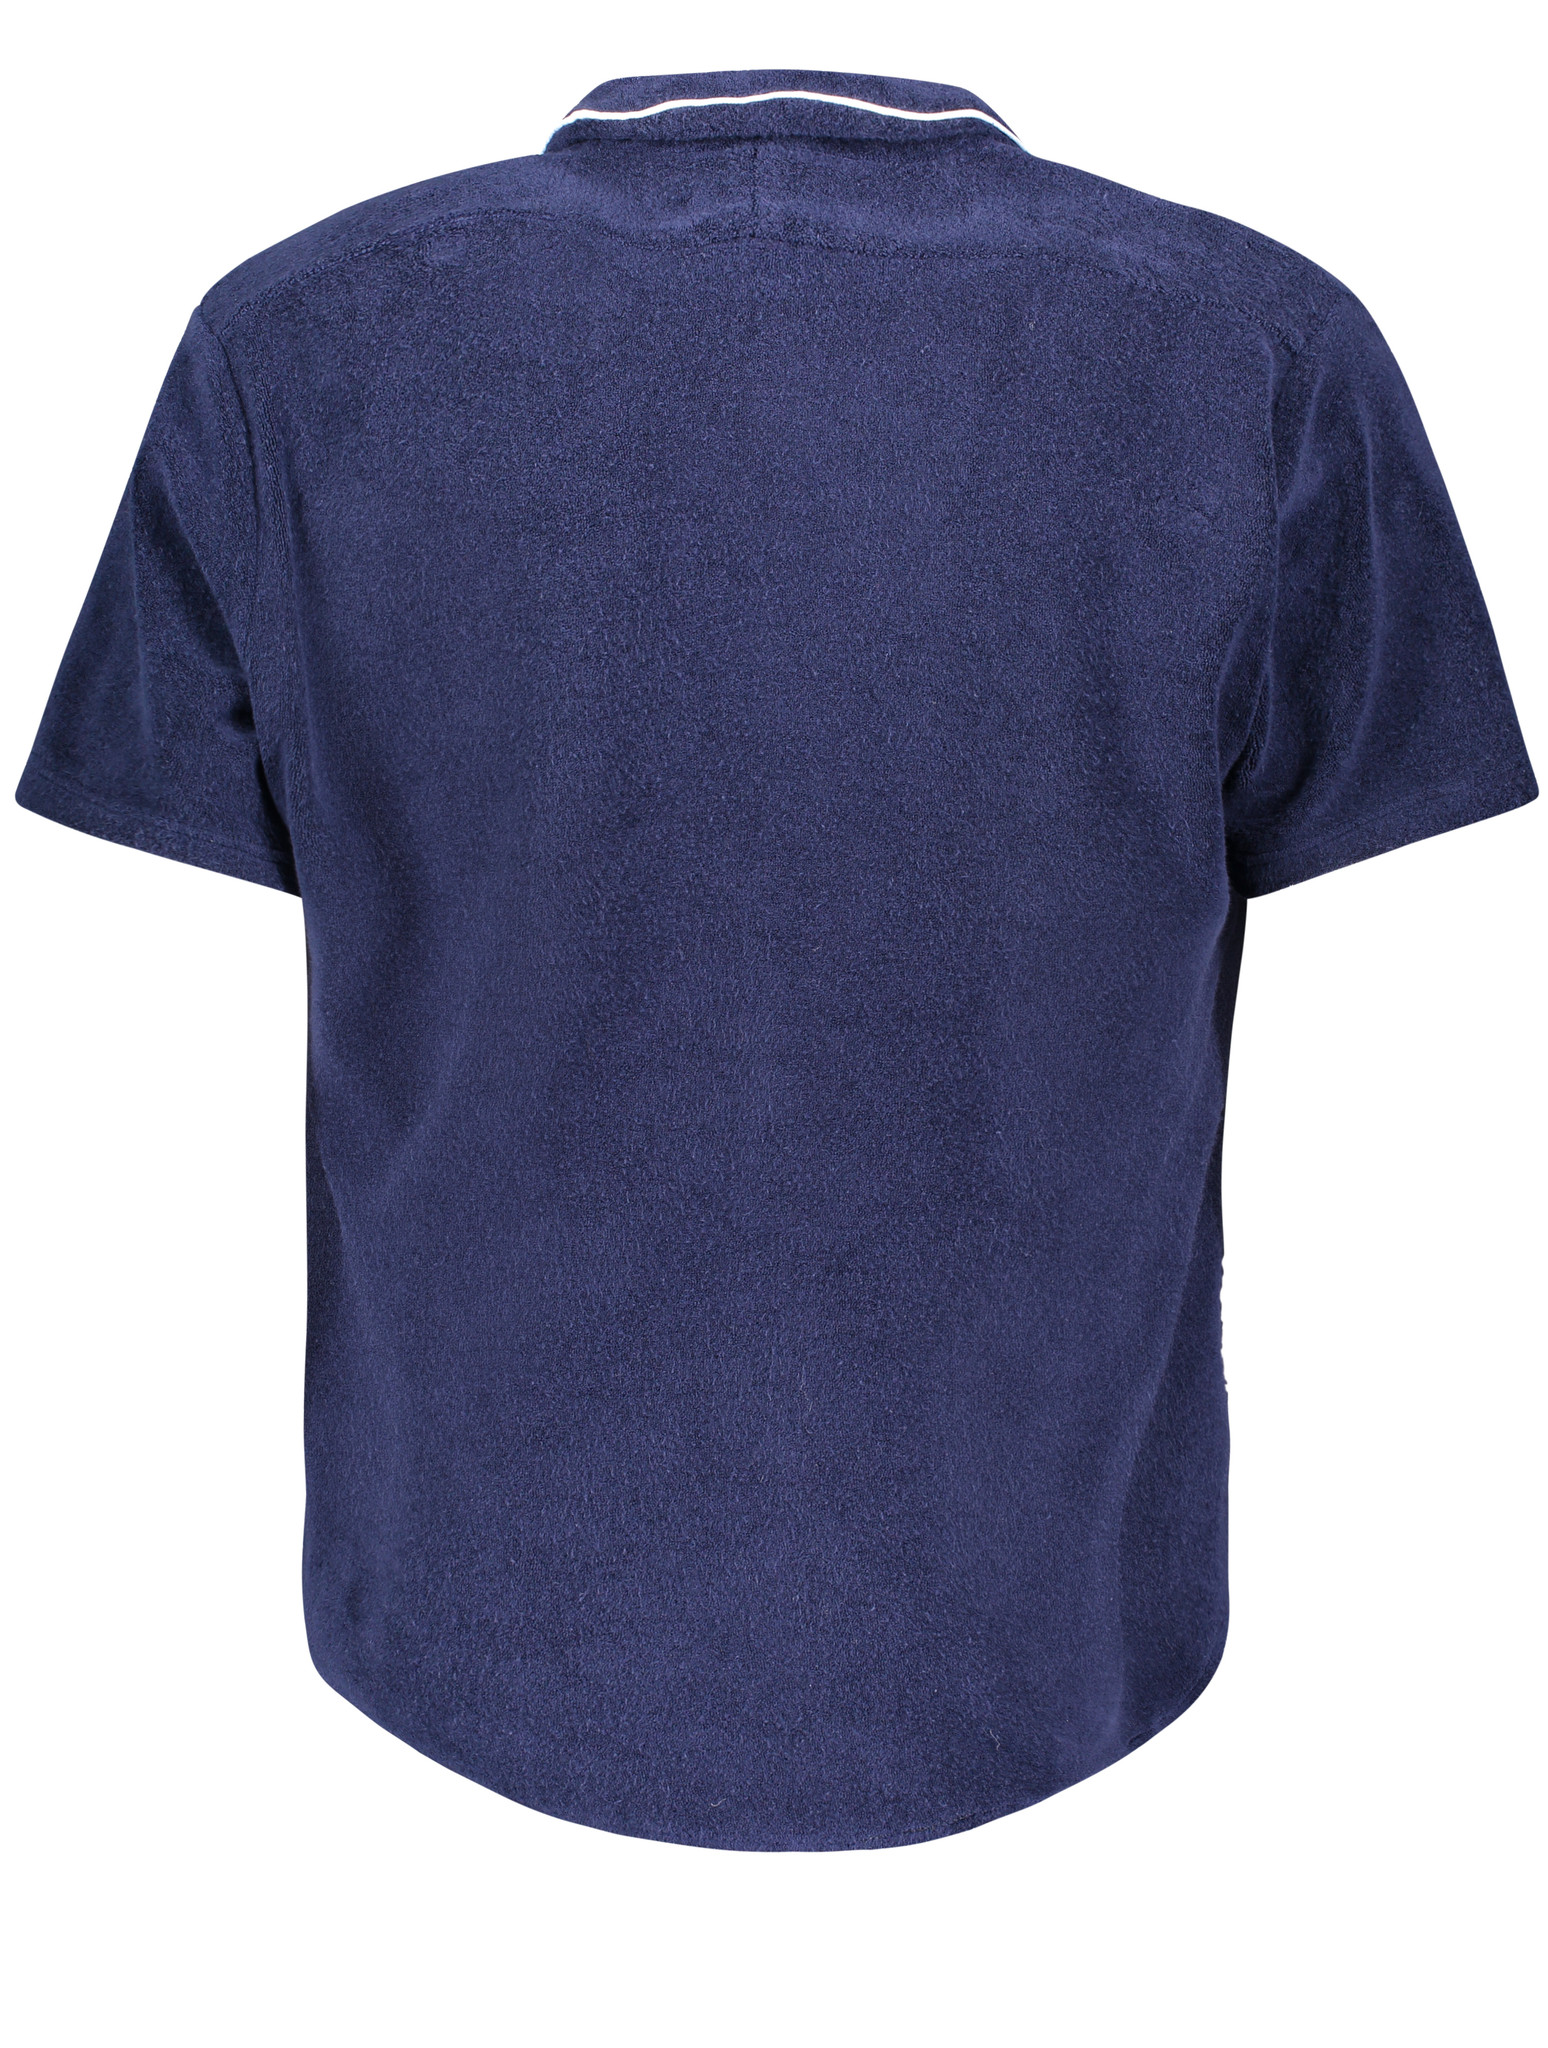 Men's short sleeve Shirt Terry Towel Fabric Blue-3